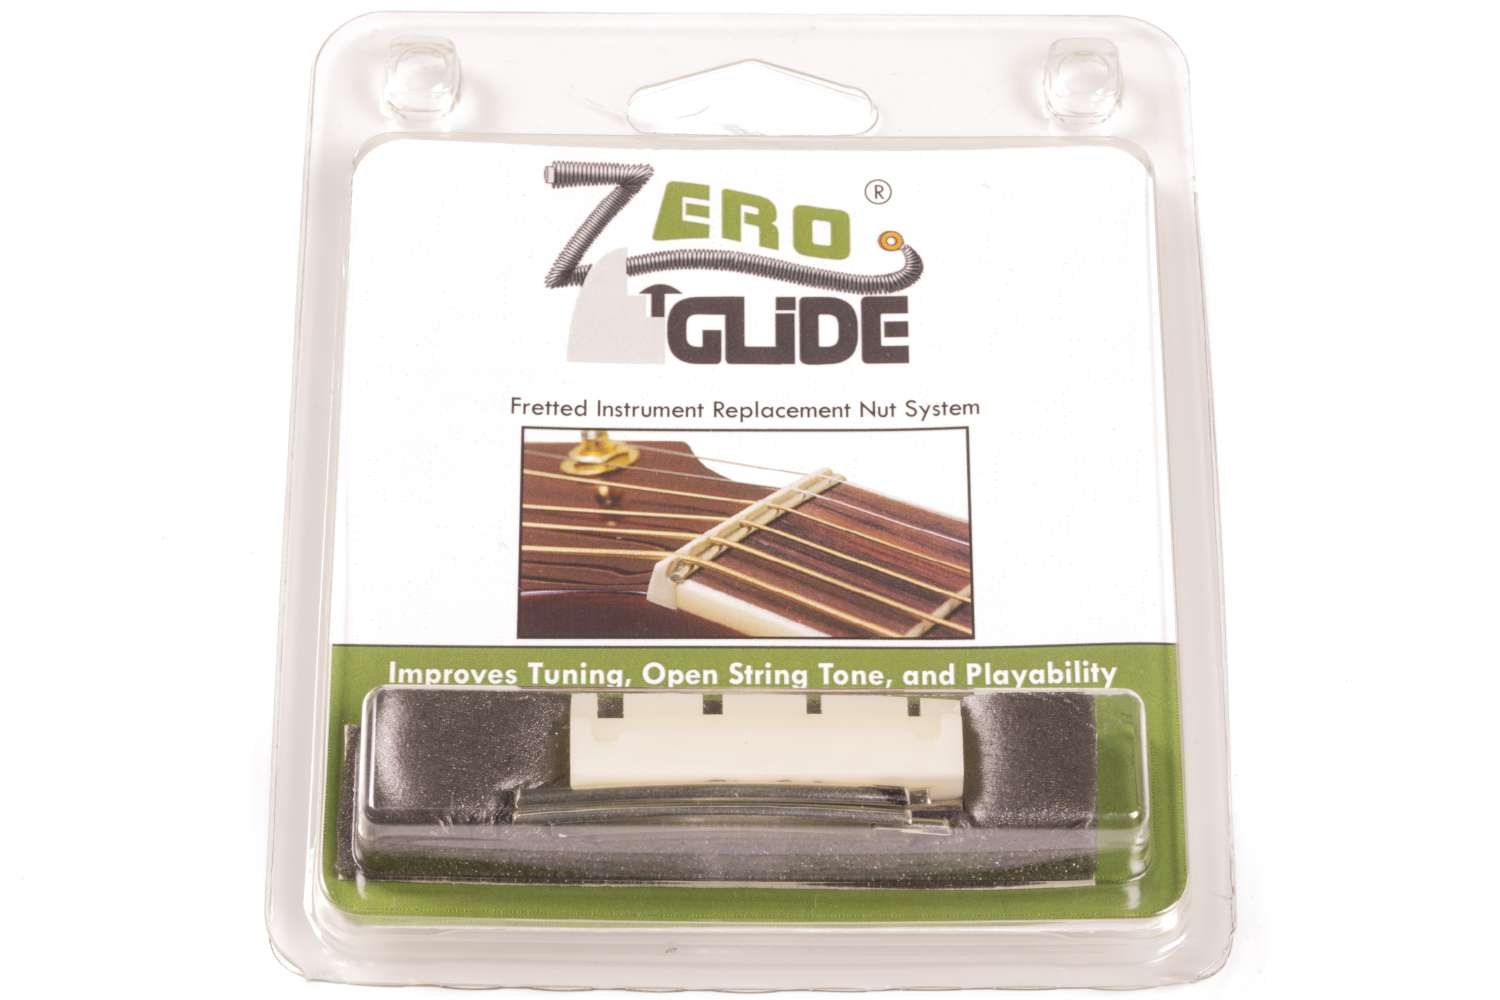 Zero Glide ZS-18 Acoustic Guitar Nut for Bass Guitar